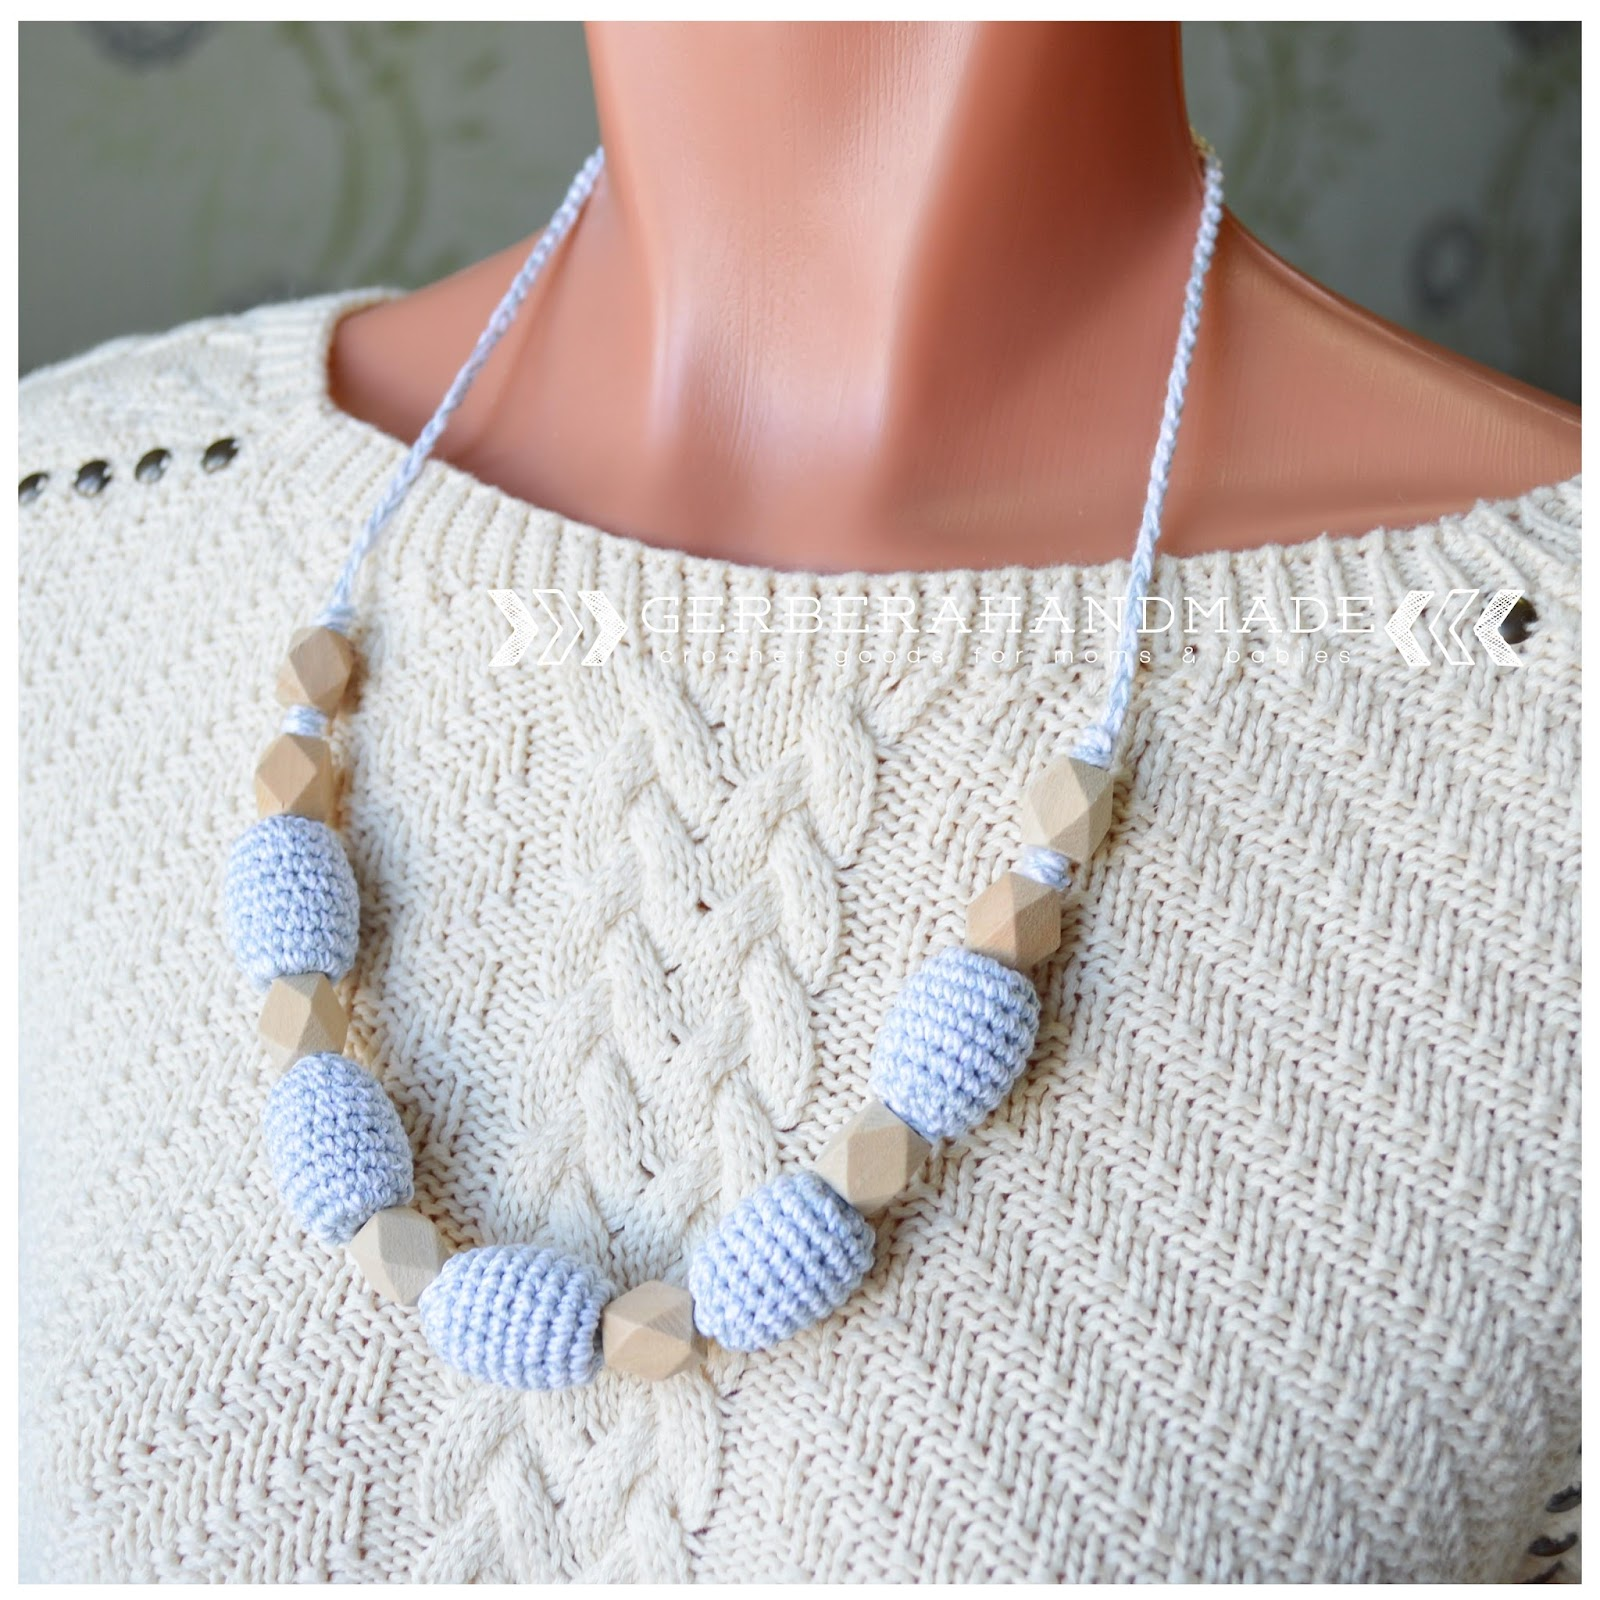 nursing necklace, Chomping Necklace, baby wrap sling, baby wrap, eco friendly, eco friendly toy, wooden jewelry, new mom gift, attachment parenting, new baby gift